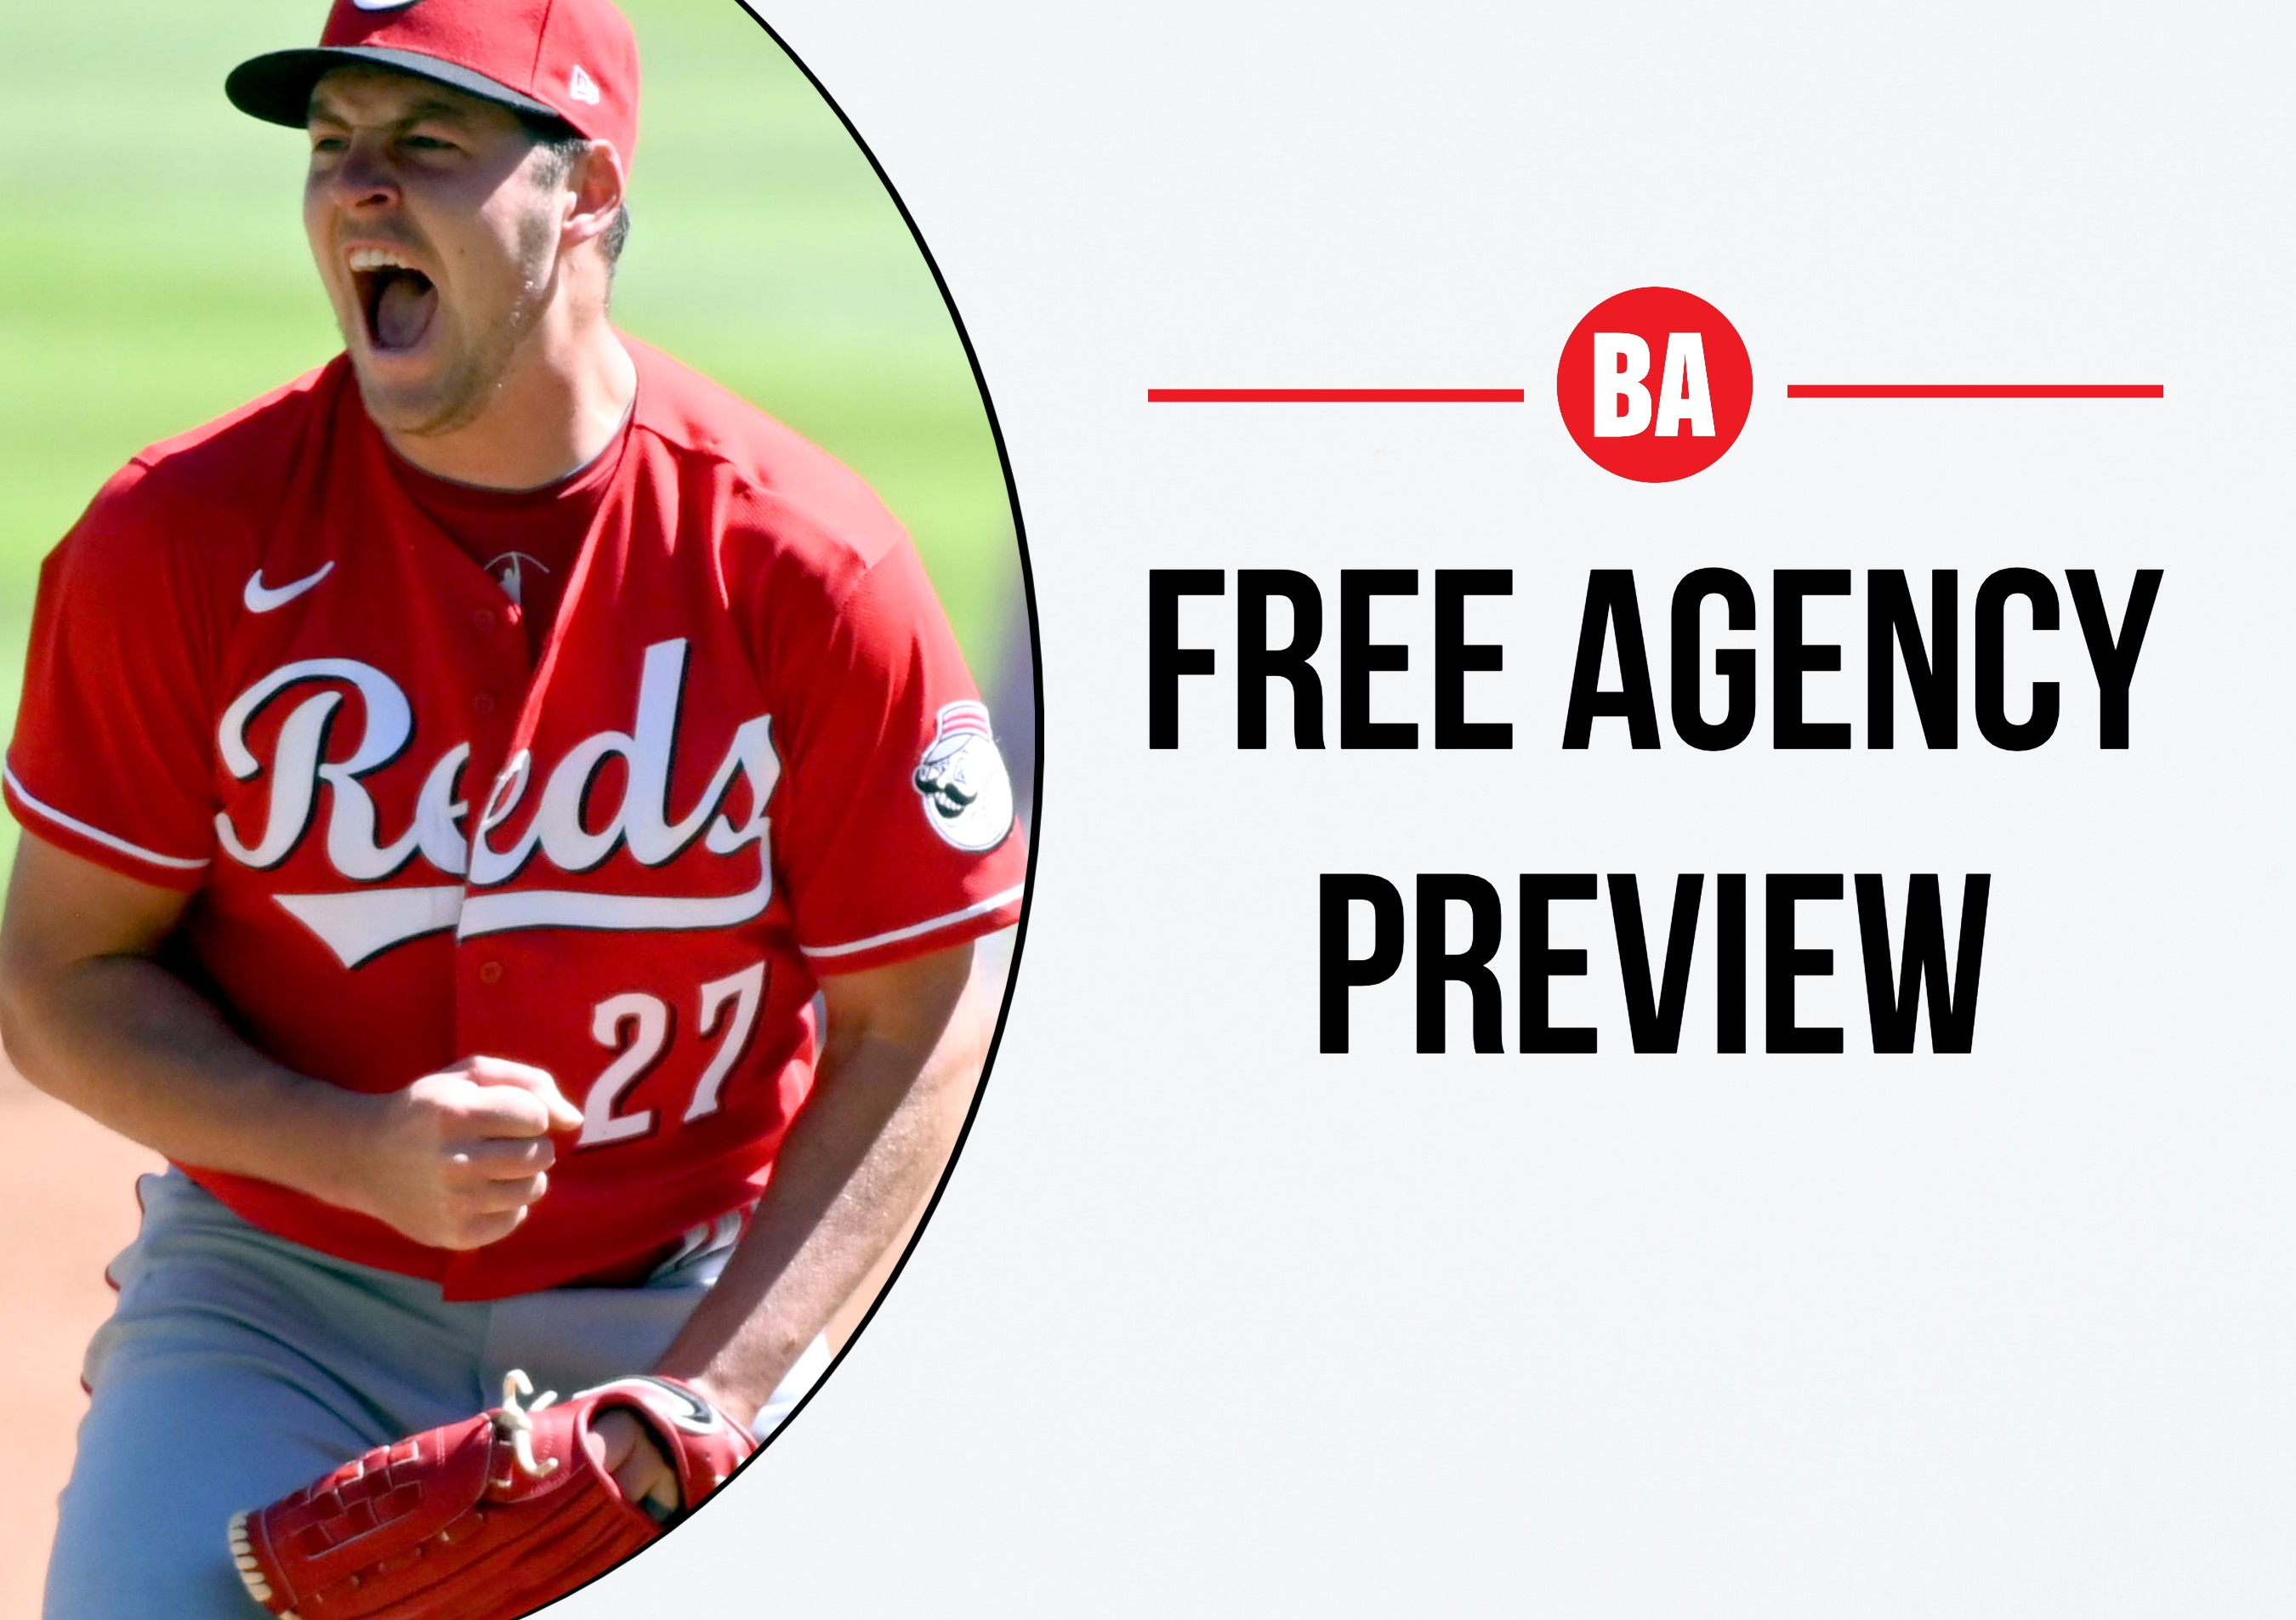 Free_agency_preview